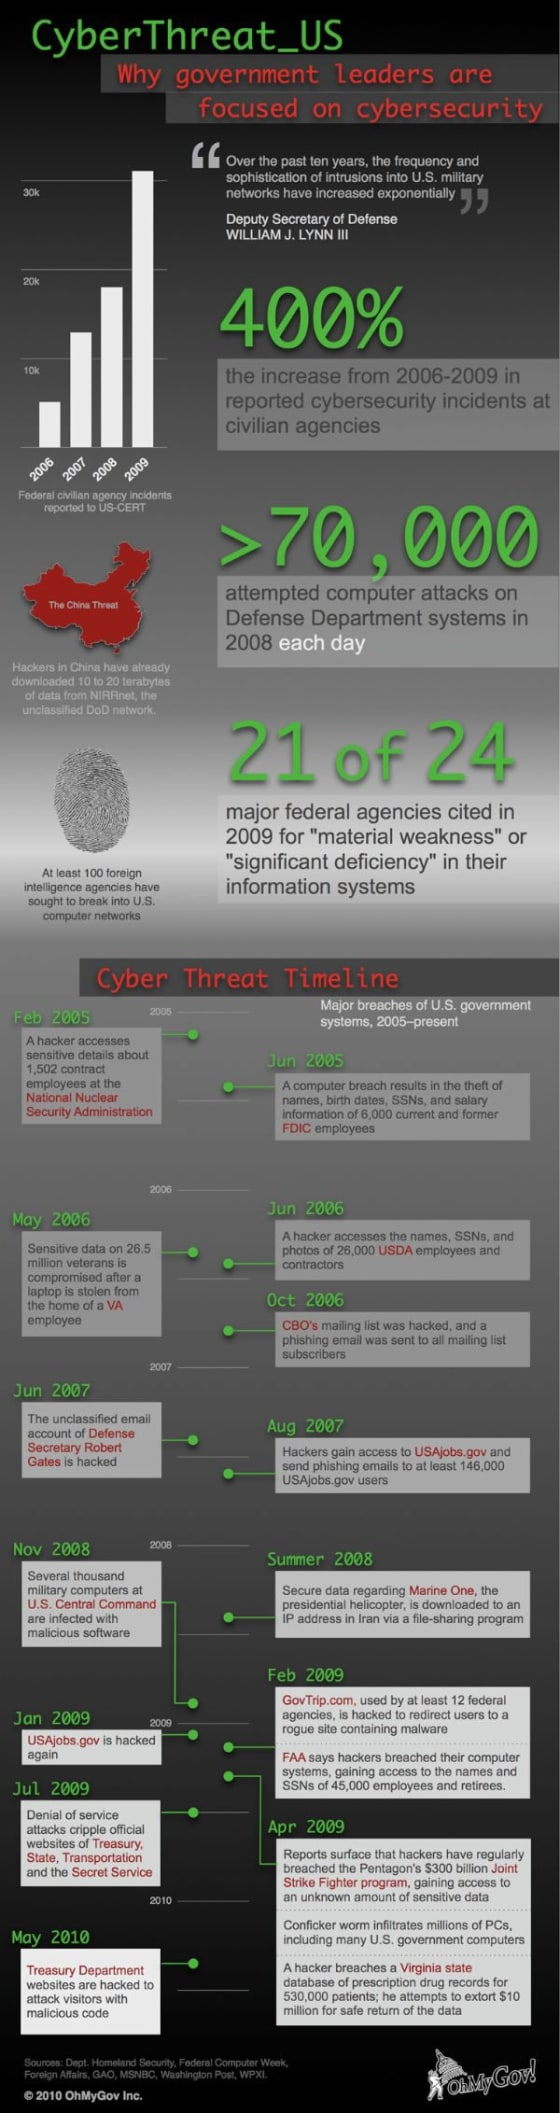 cybersecurity, federal government, defense